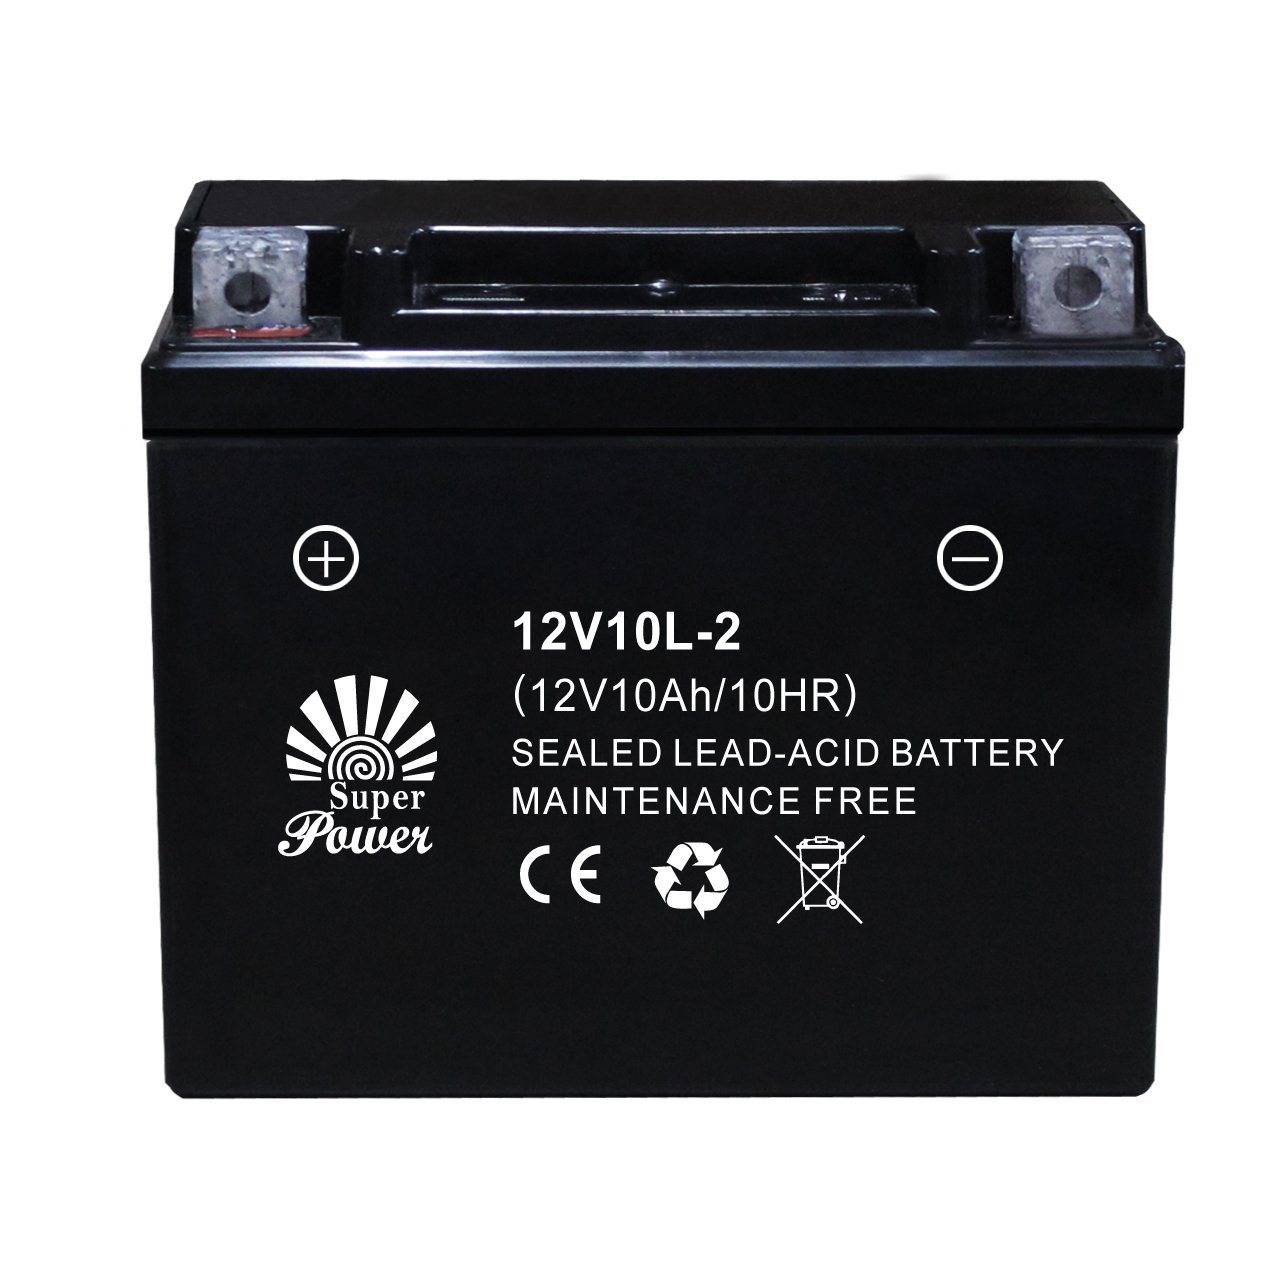 VRLA Motorcycle Battery 12V 10ah with CE UL Certificate Called 12V10L-2